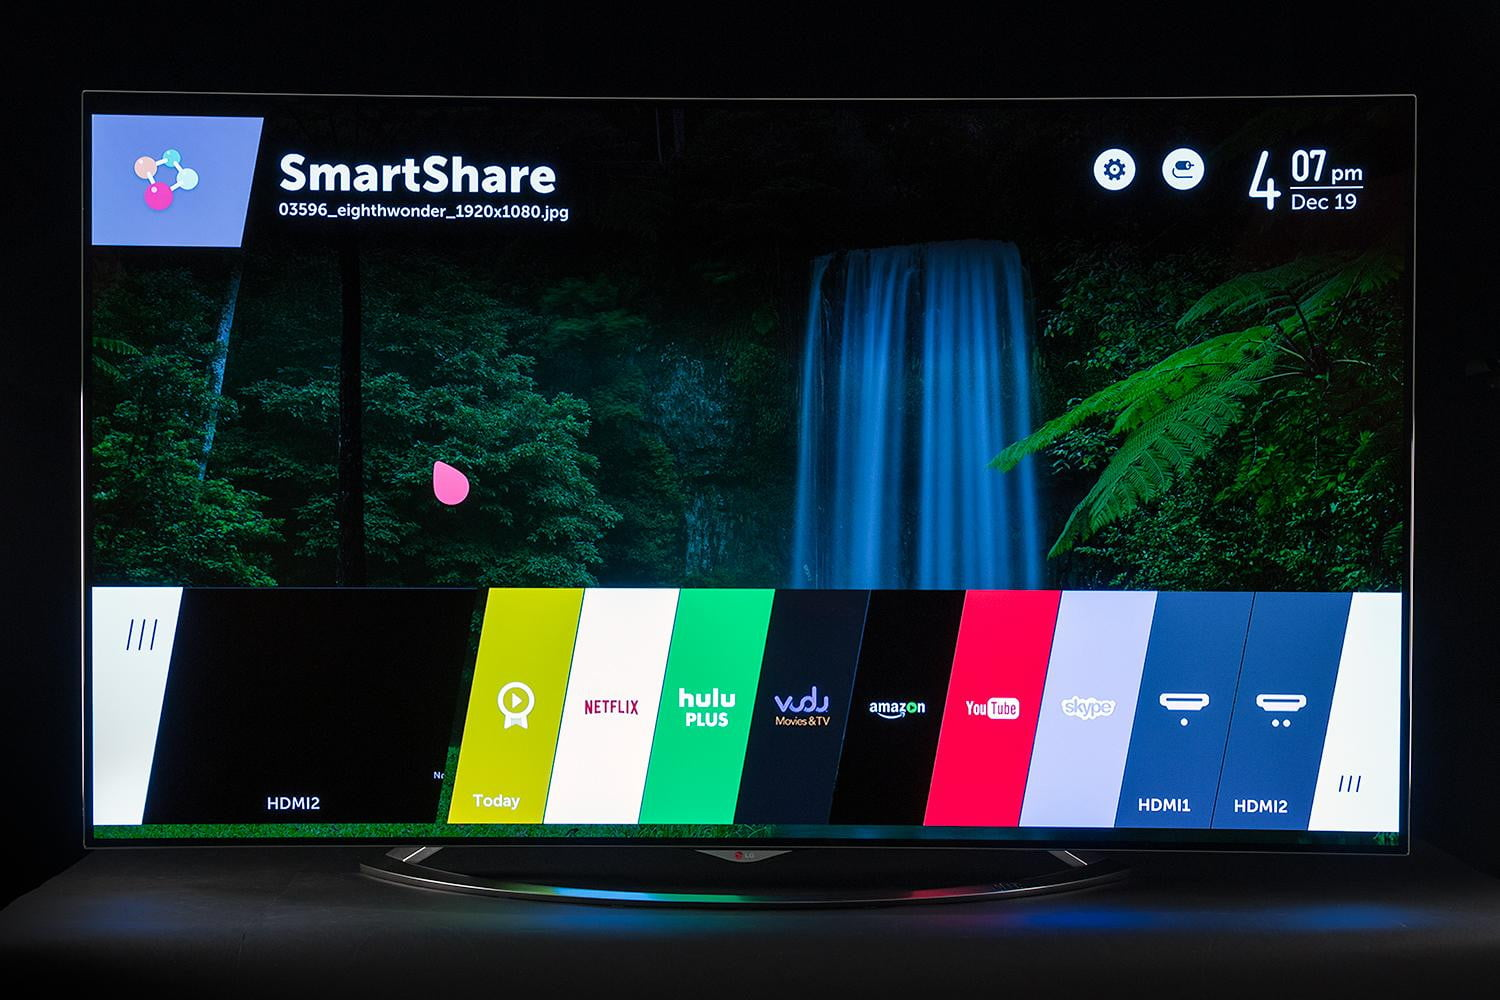 lg 65ec9700 review the best tv ever made will cost you digital trends. Black Bedroom Furniture Sets. Home Design Ideas